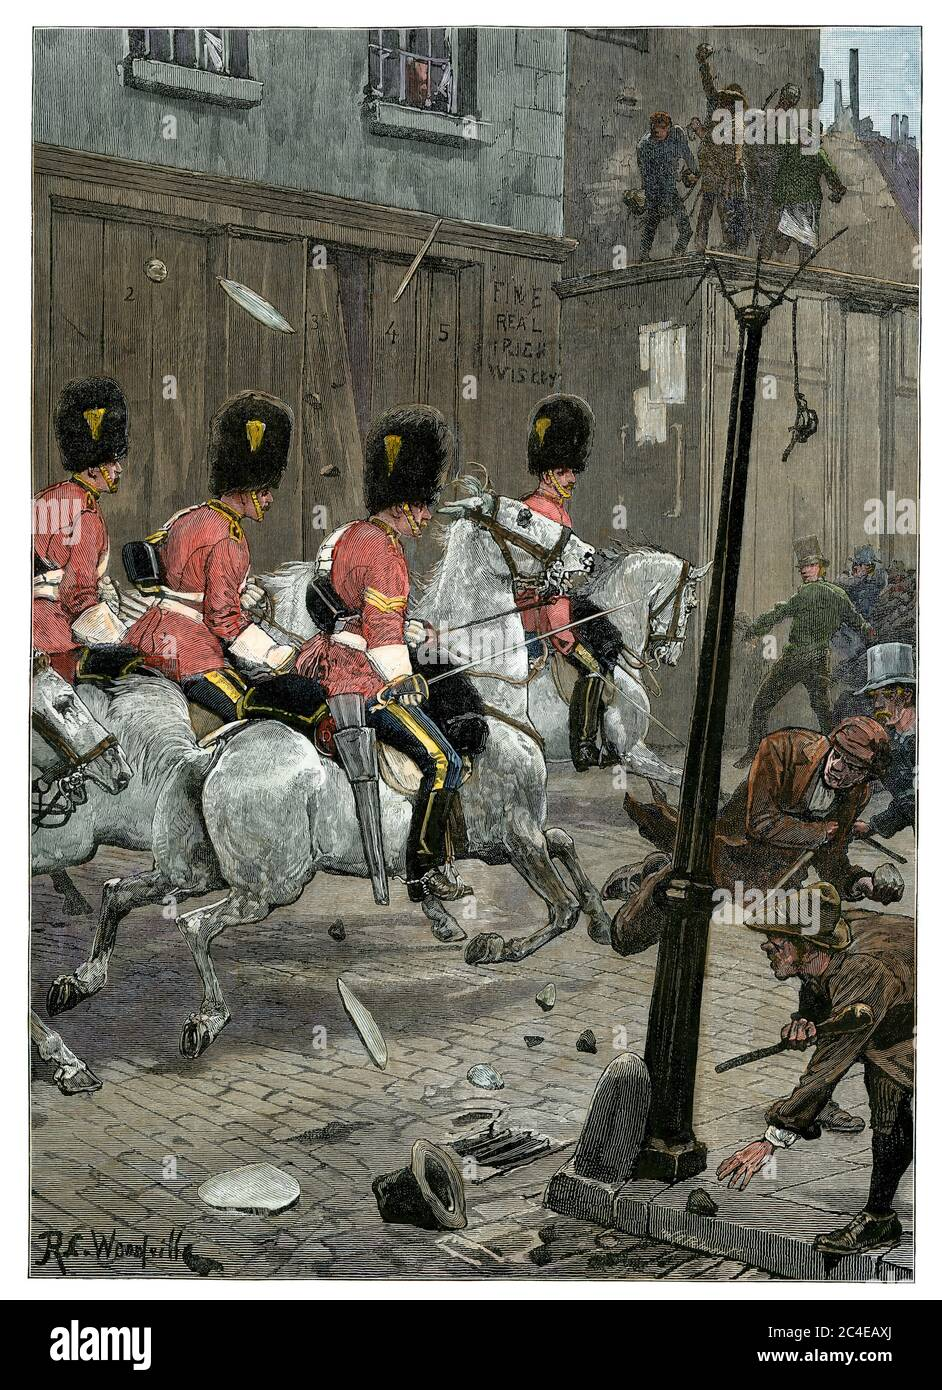 Royal Scots Grays cavalry charging Irish Land League agitators in Limerick, 1881. Hand-colored woodcut Stock Photo